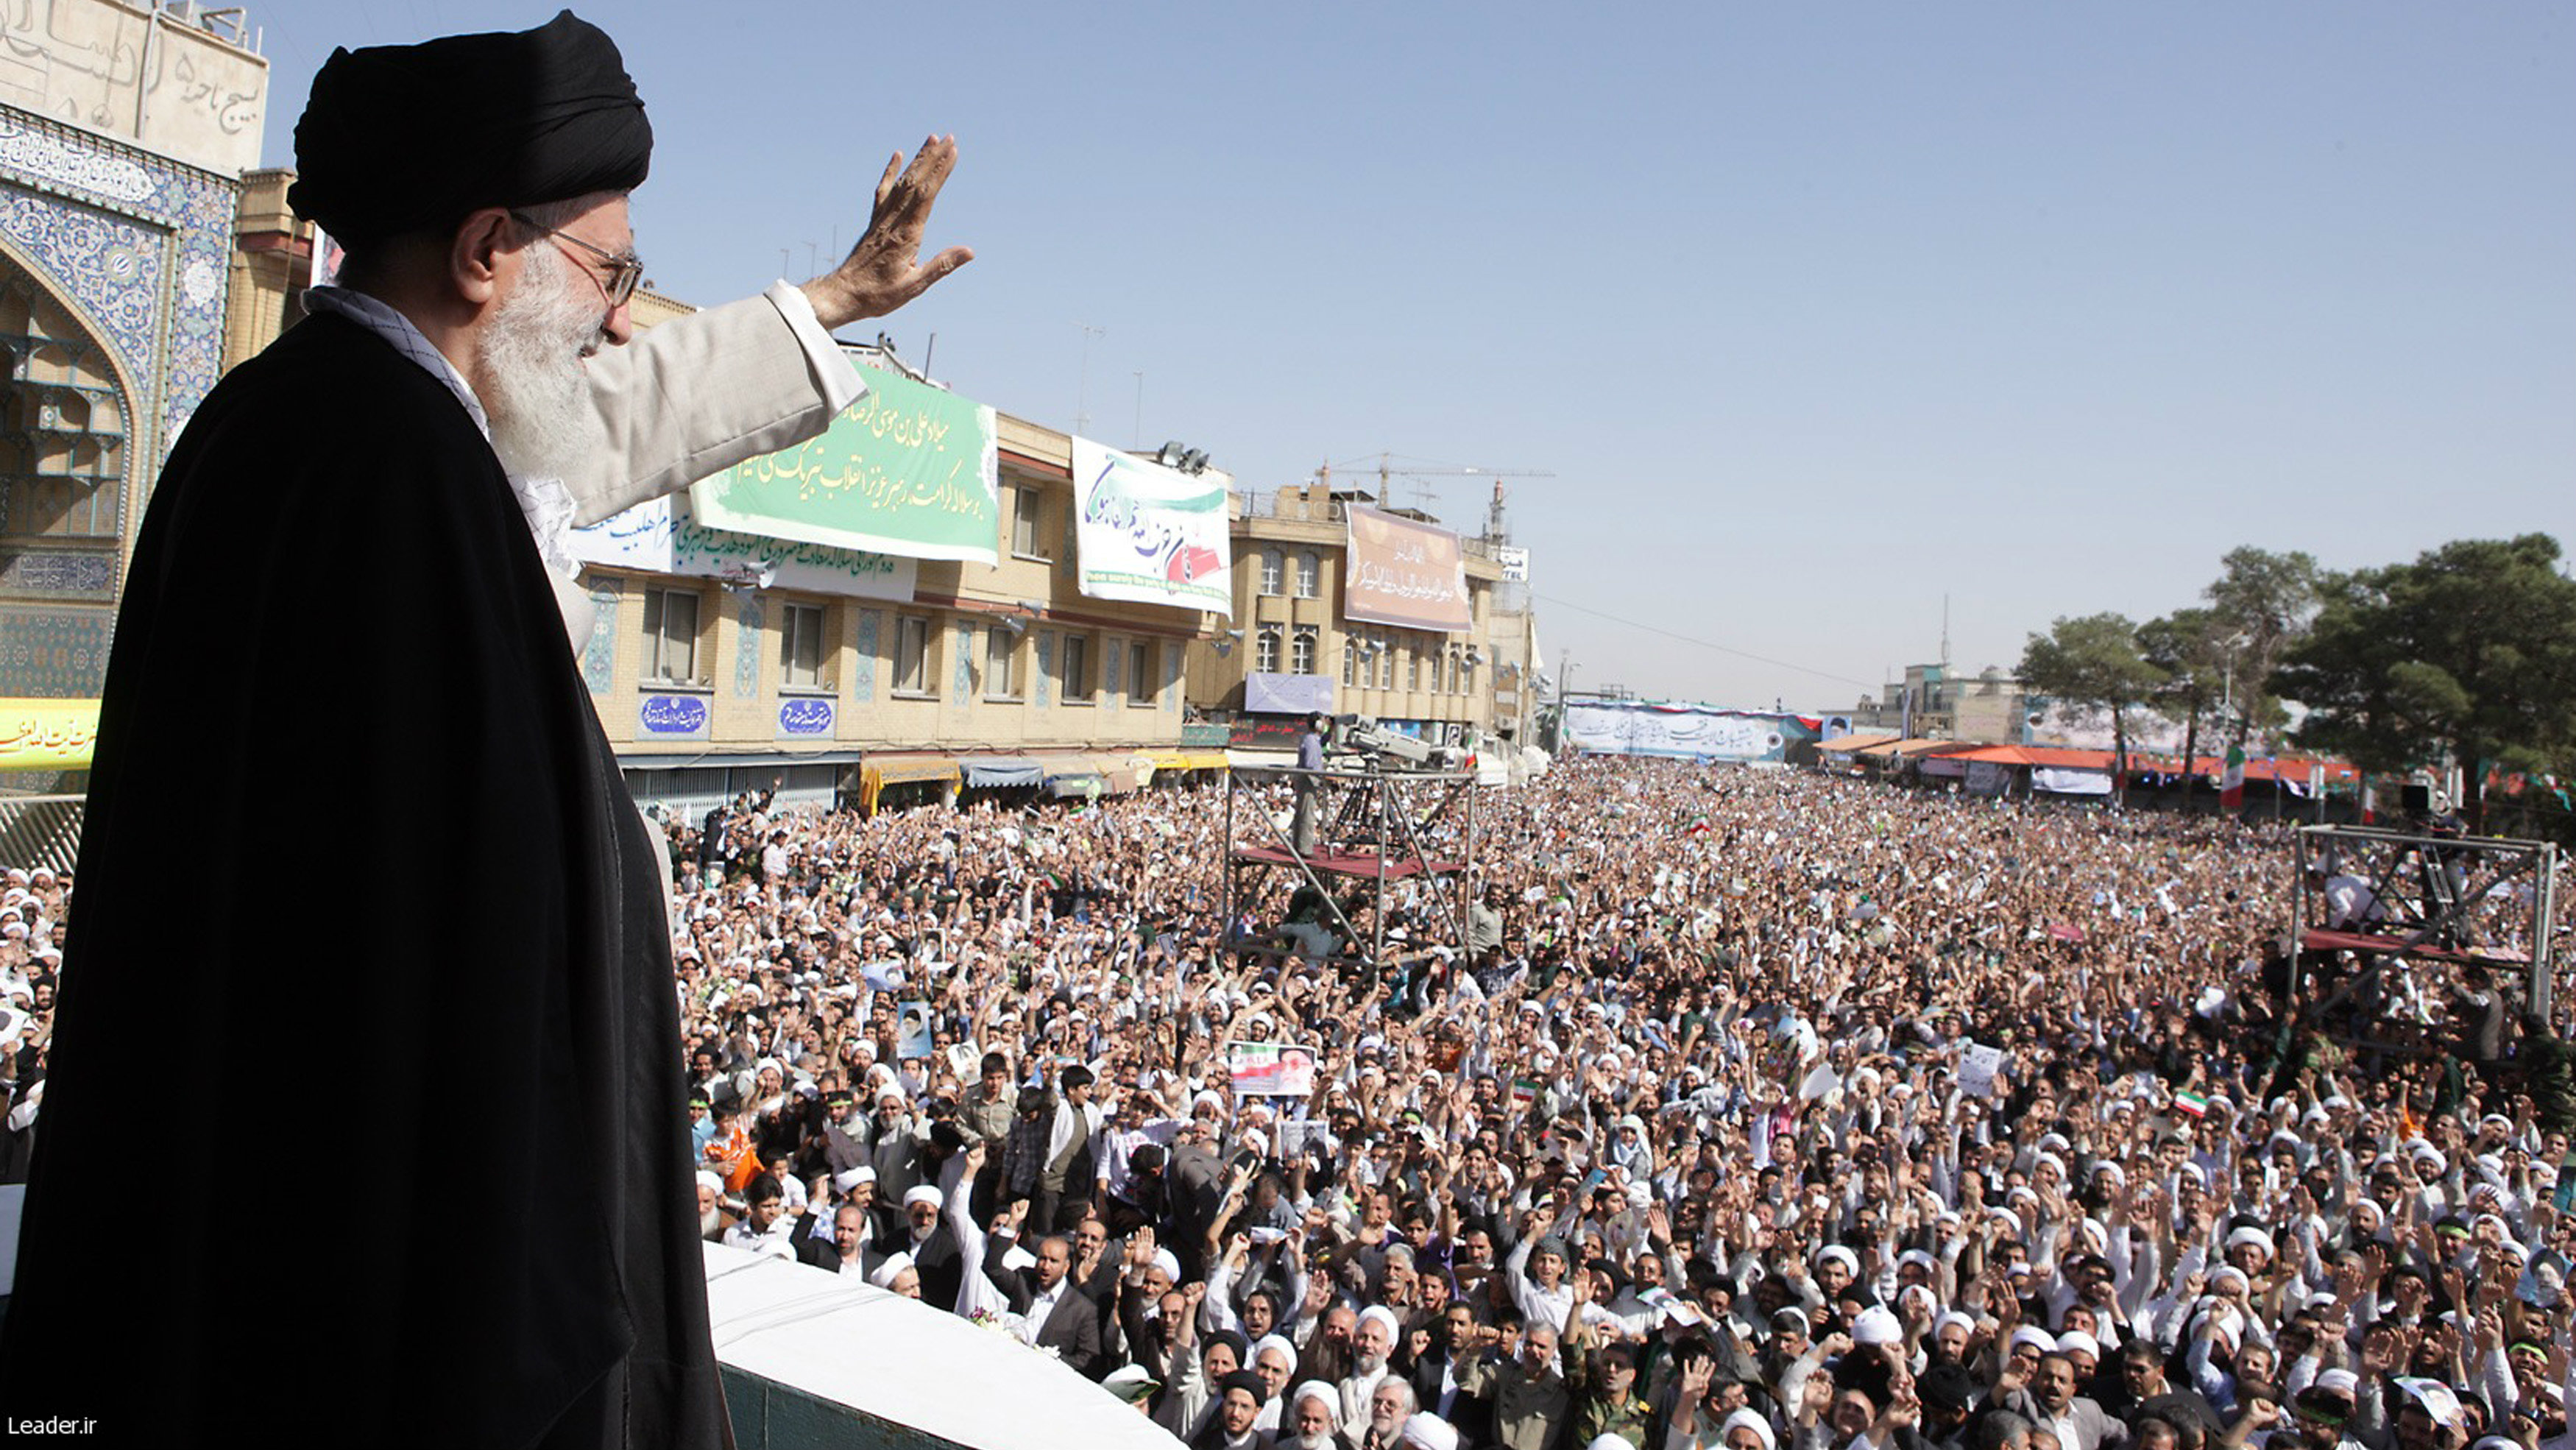 Iran's Supreme Leader Ayatollah Ali Khamenei waves to the crowd in the holy city of Qom, 120 km (75 miles) south of Tehran, October 19, 2010.